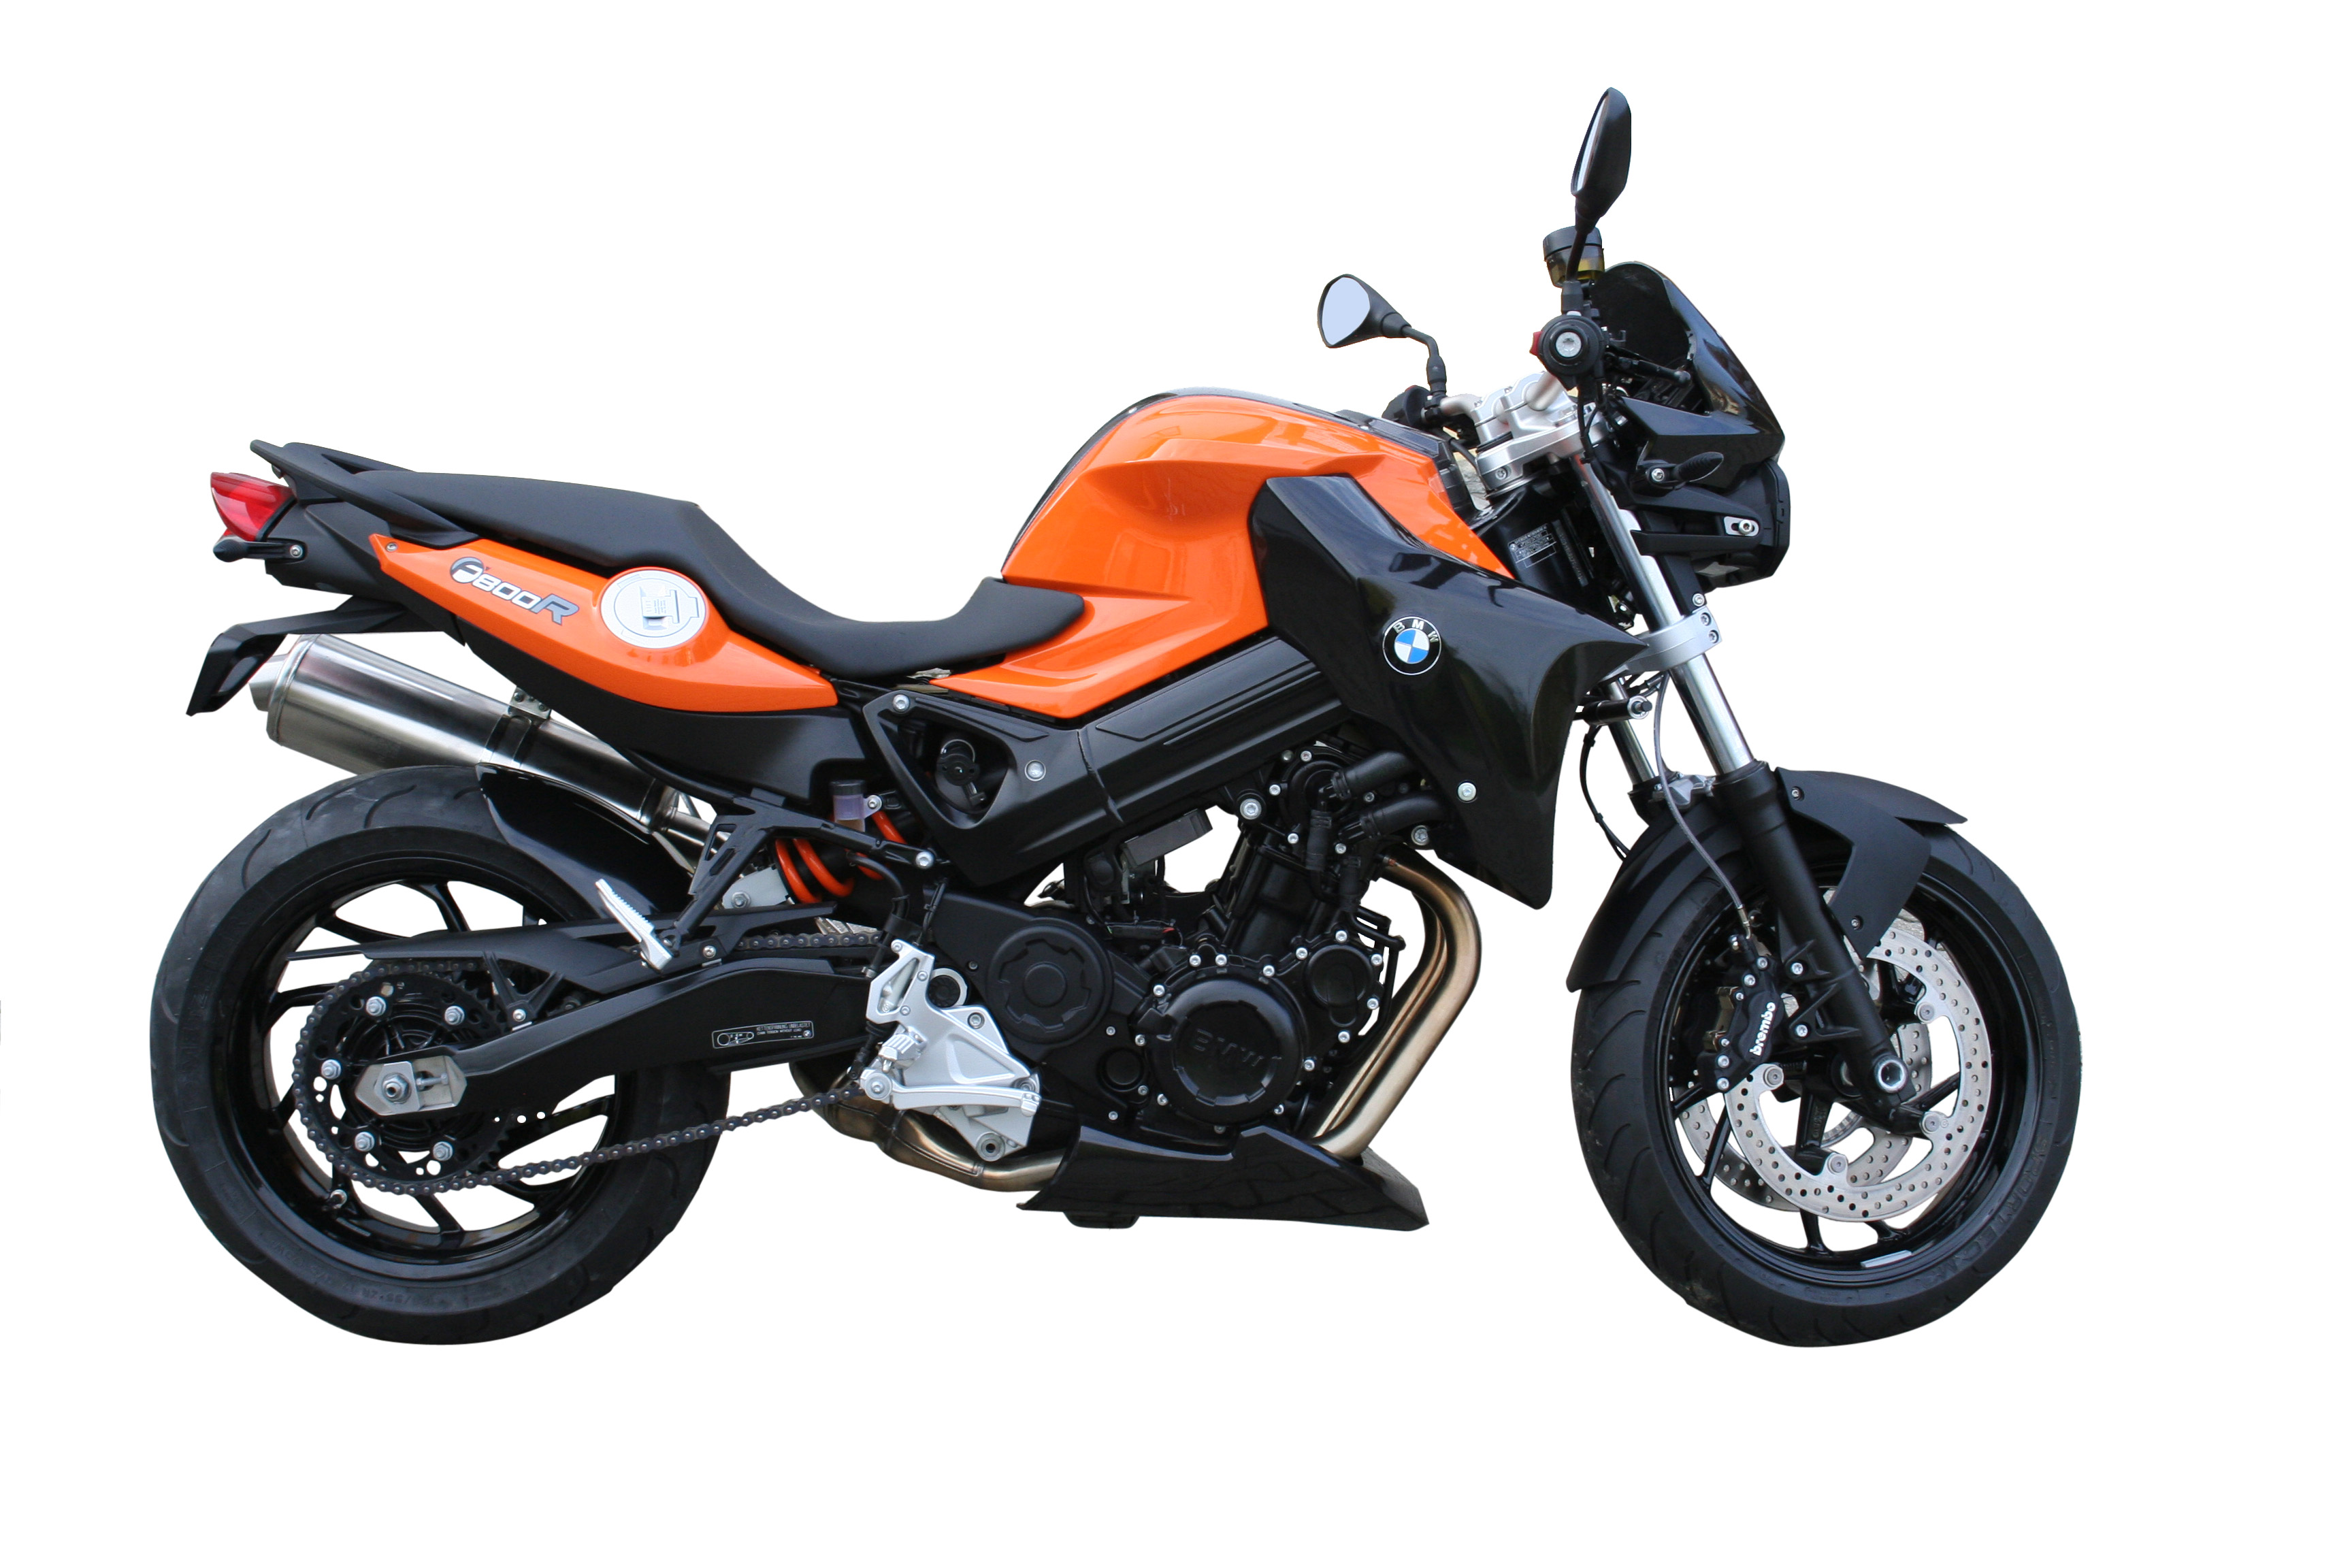 bmw f800r remodel bmw f800r new windscreens and a sporty design bmw motorcycle accessory. Black Bedroom Furniture Sets. Home Design Ideas